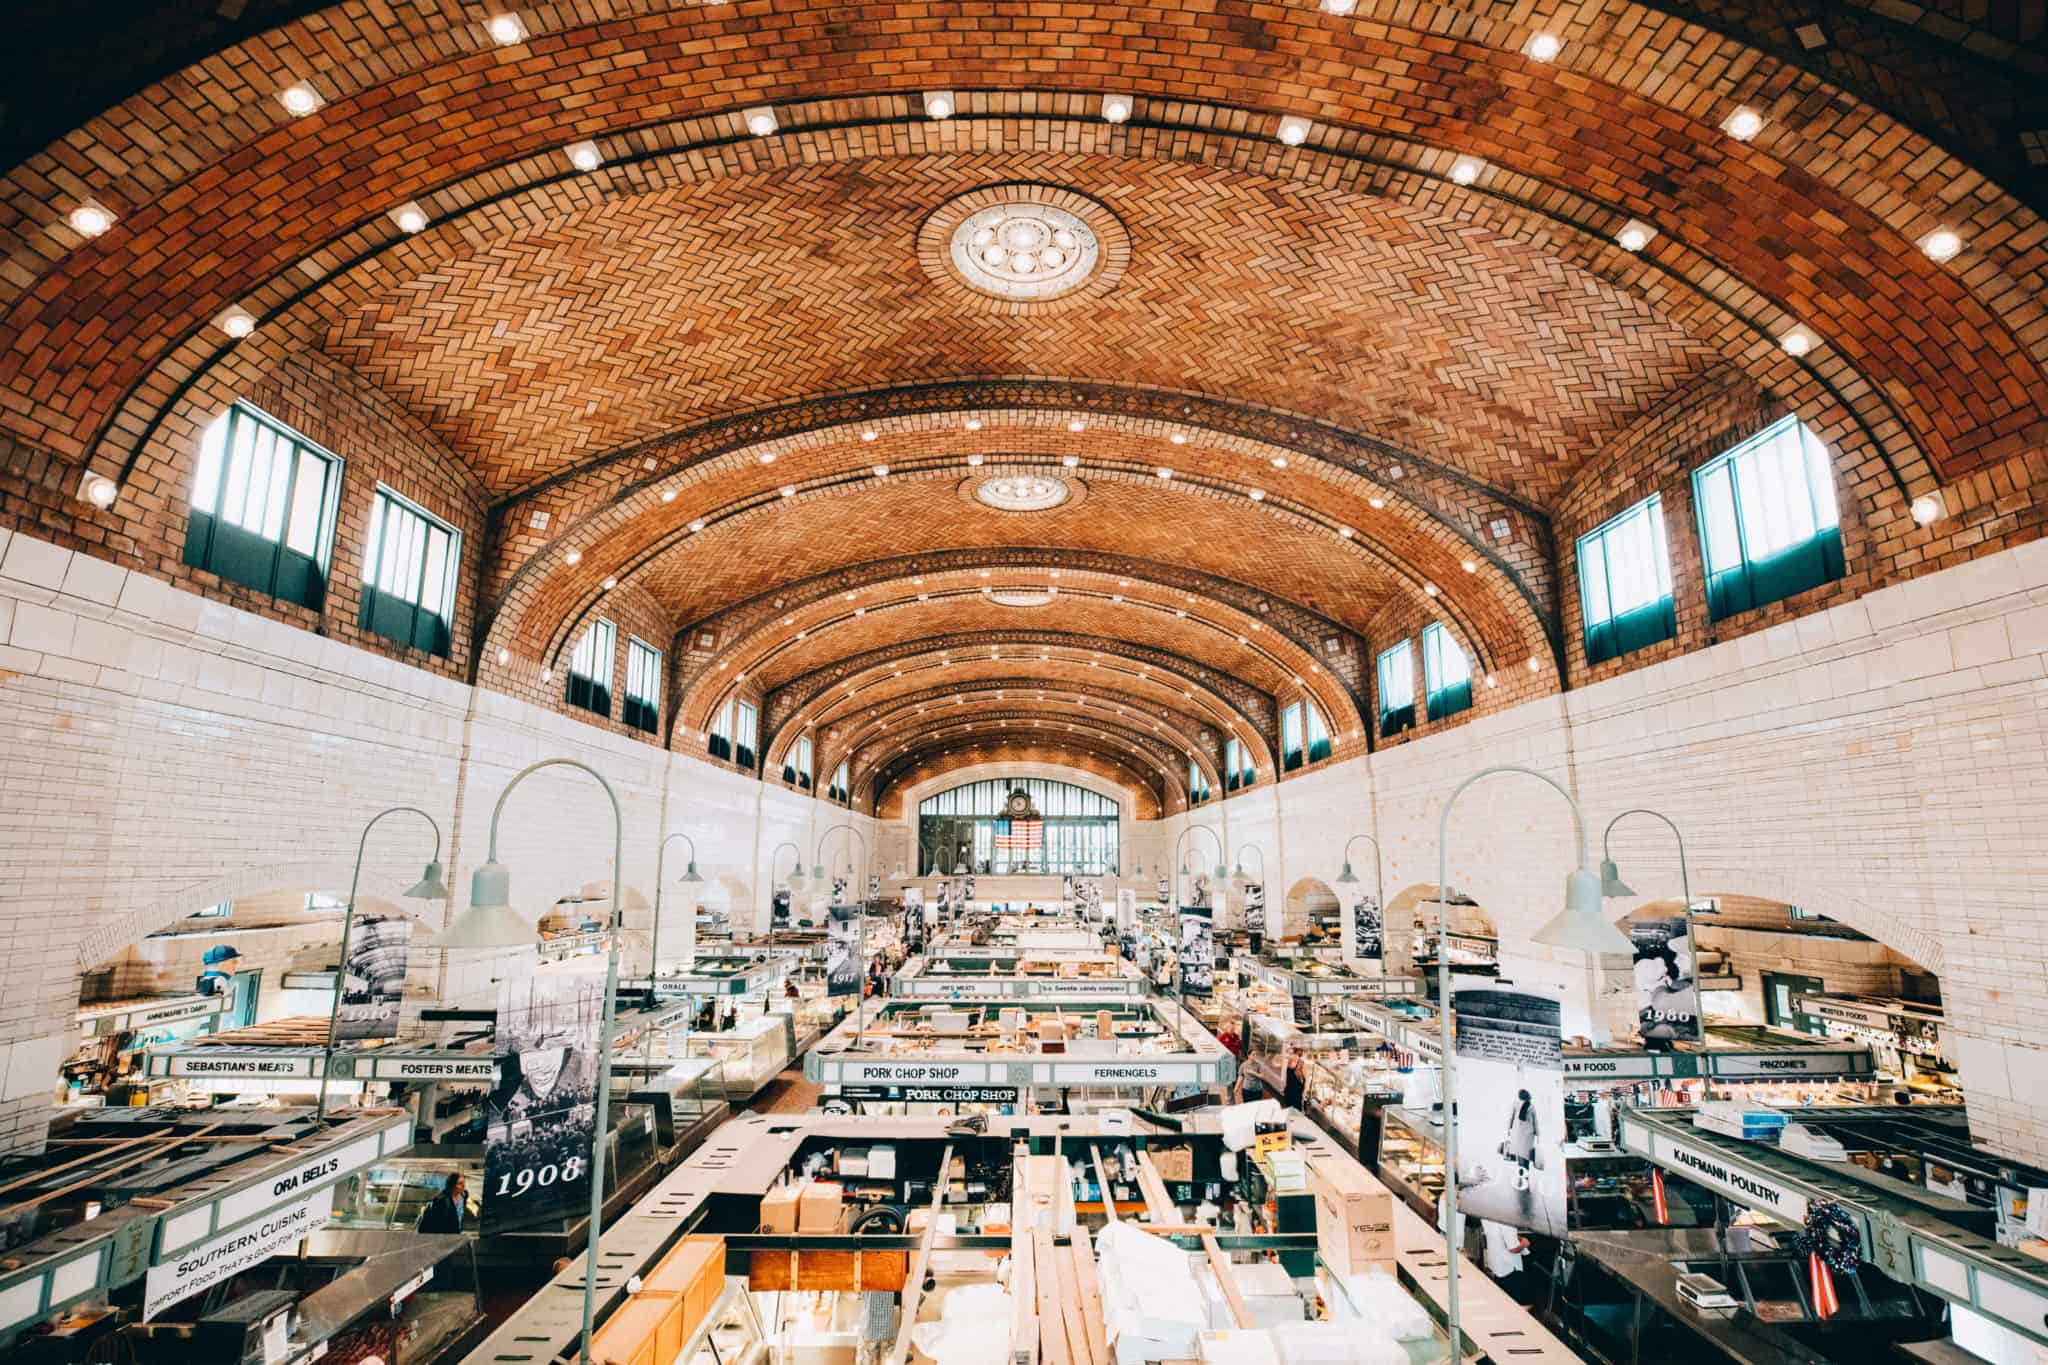 20 Must See Instagram Spots In Cleveland Ohio To Snap The